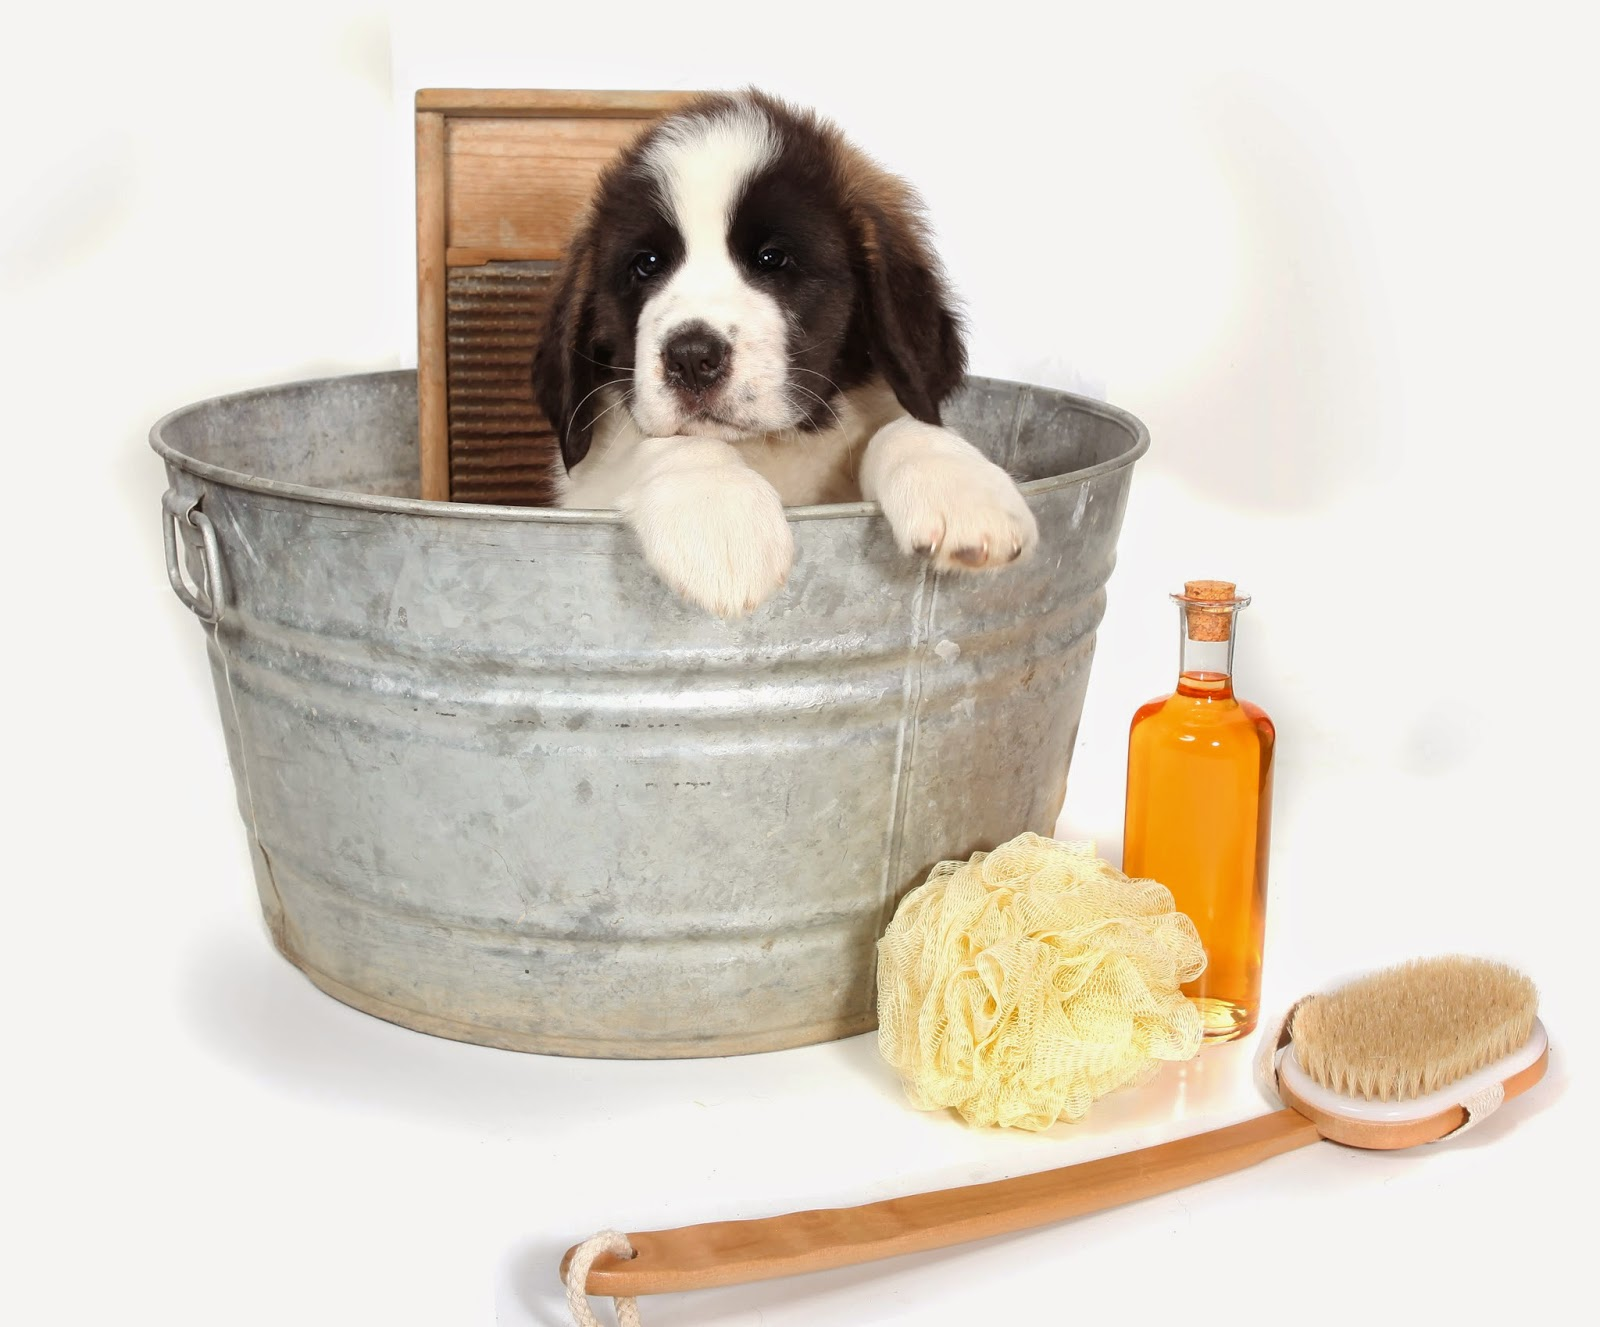 dog in bath tub with grooming supplies